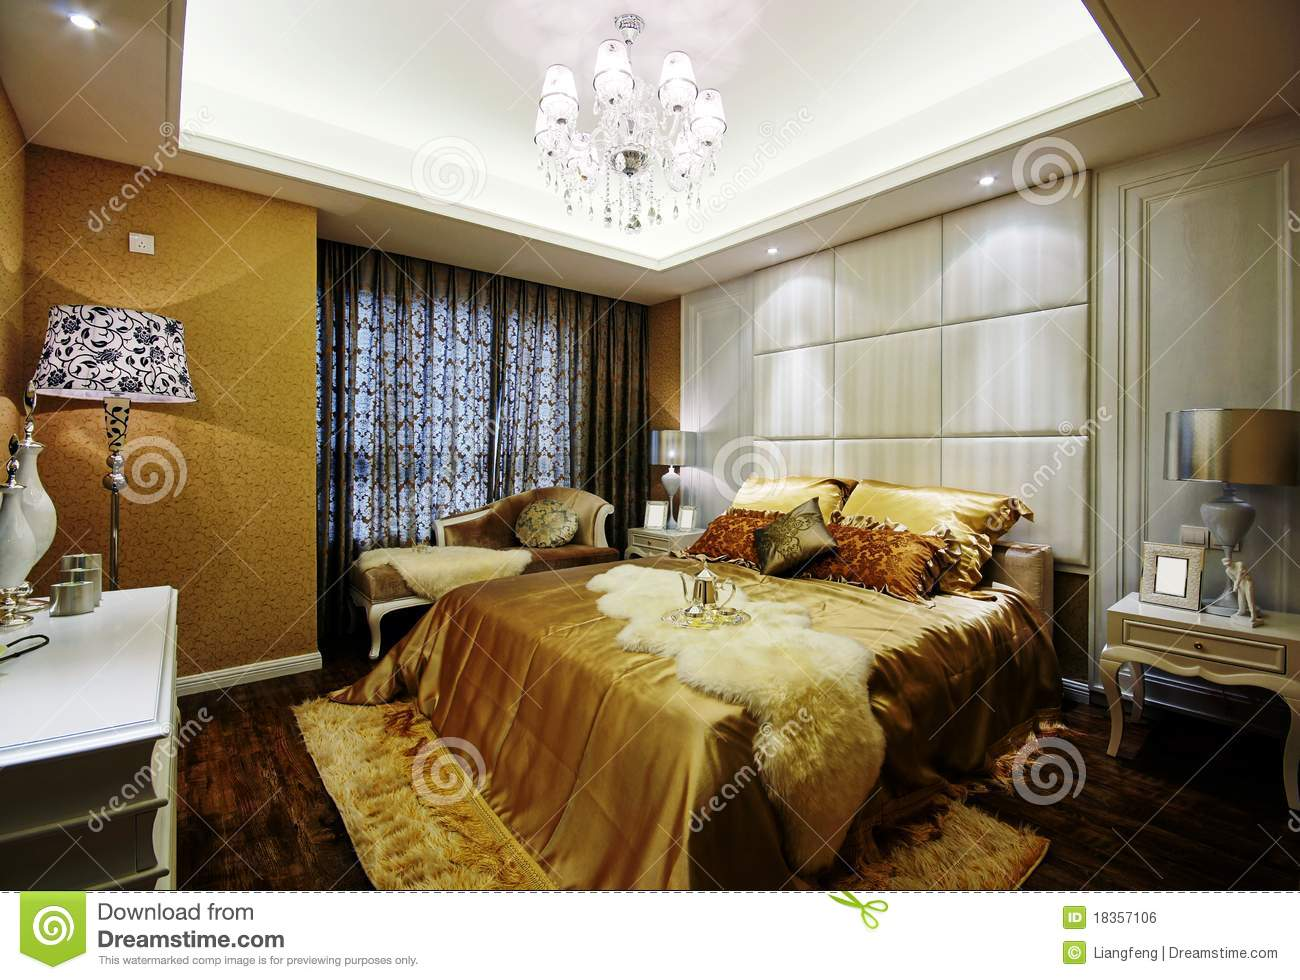 Beautiful room decoration royalty free stock image image for Beautiful room decoration